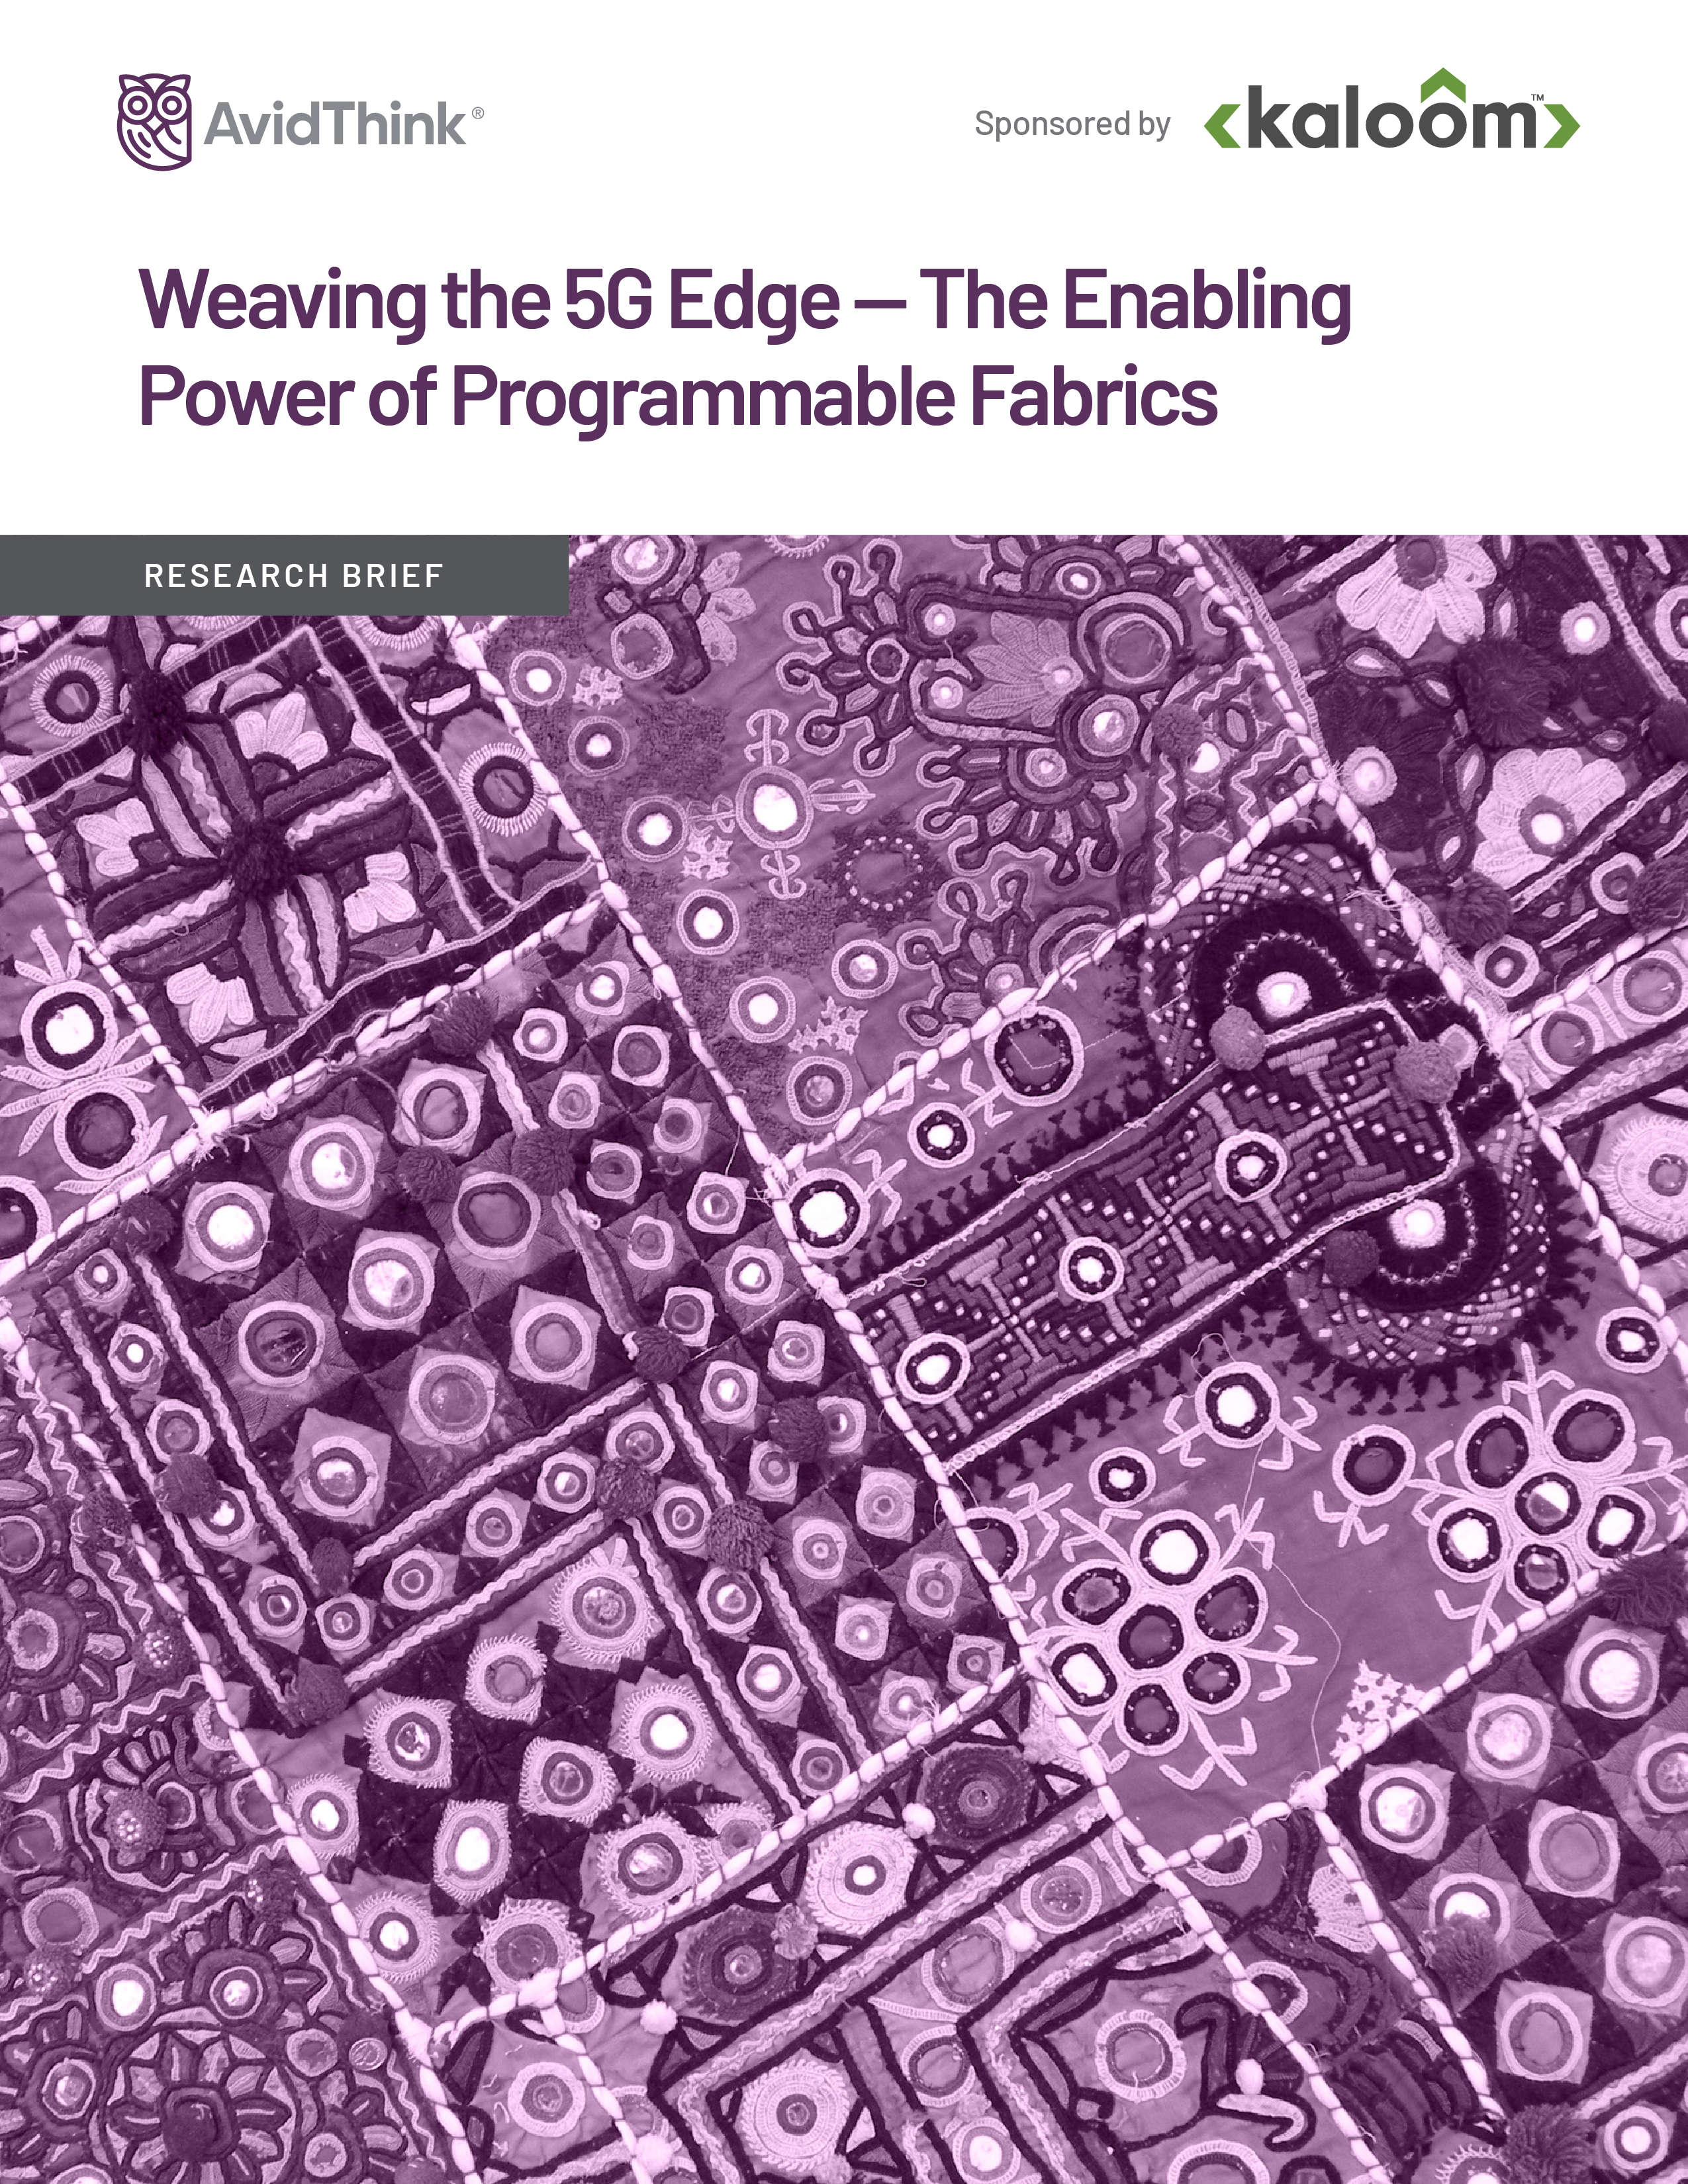 AvidThink-Kaloom-Weaving-the-5G-Edge-The-Enabling-Power-of-Programmable-Fabrics-Research-Brief-2020-F cover-01